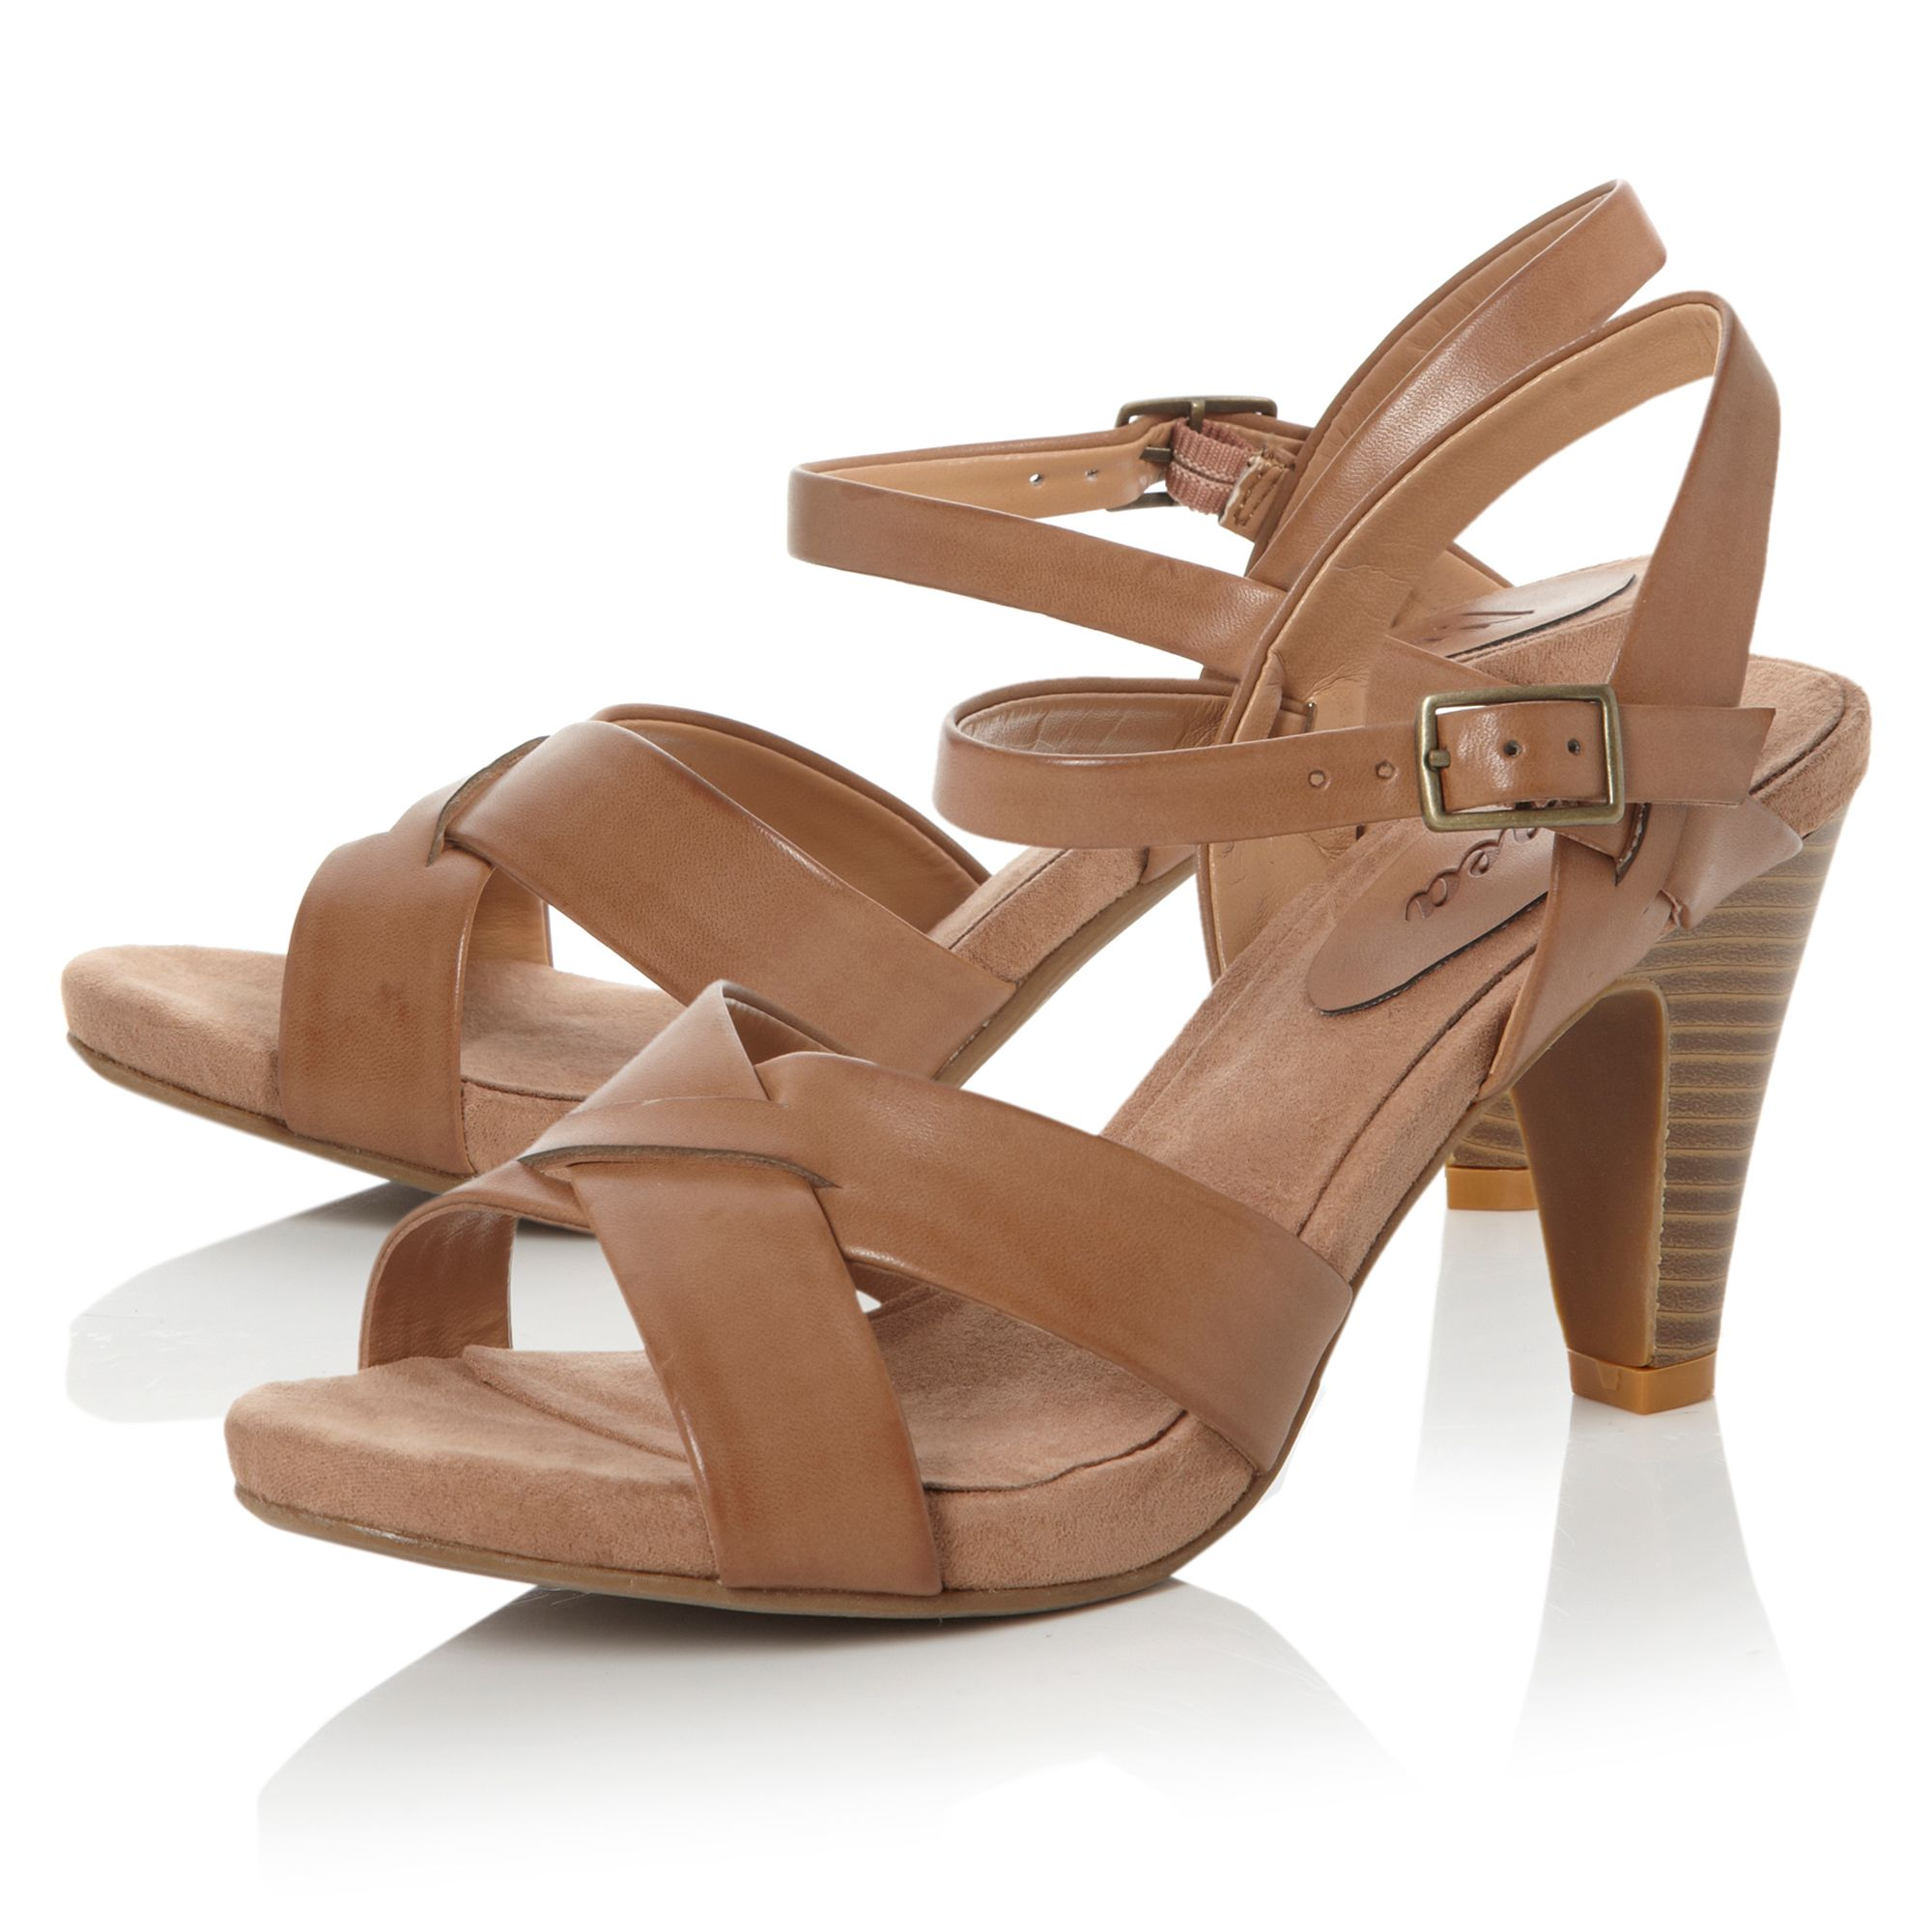 Faro plain cross strap sandals